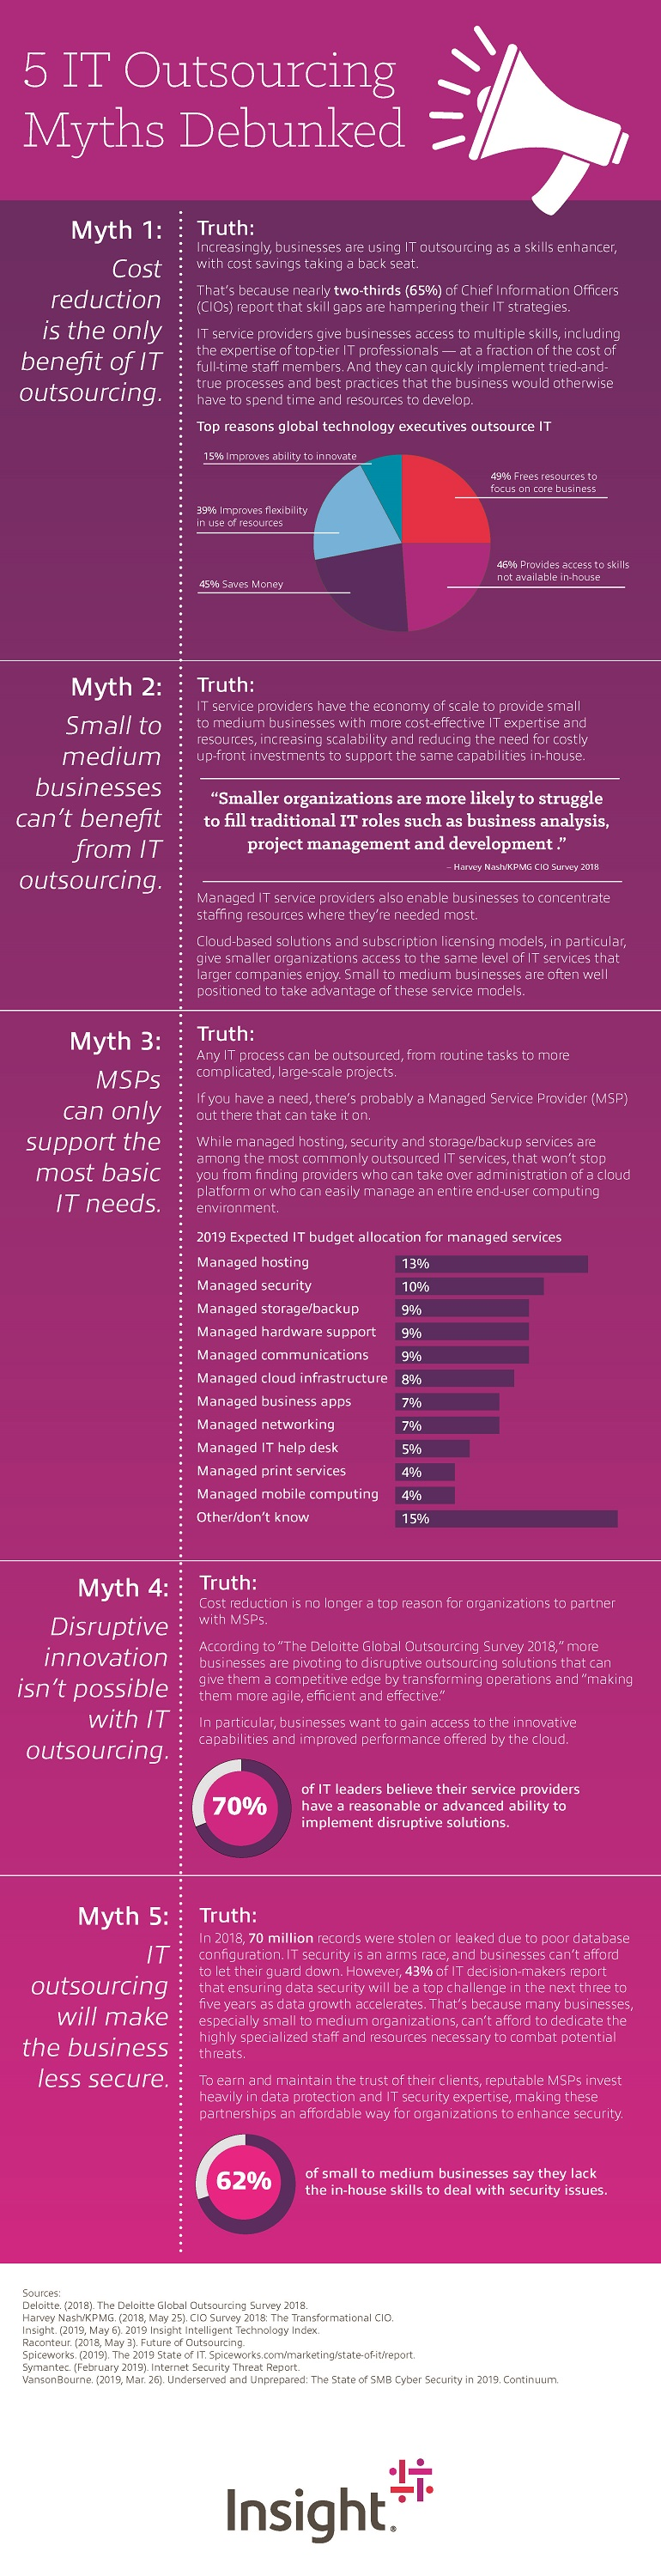 Infographic displaying 5 IT Outsourcing Myths Debunked. Translated below.